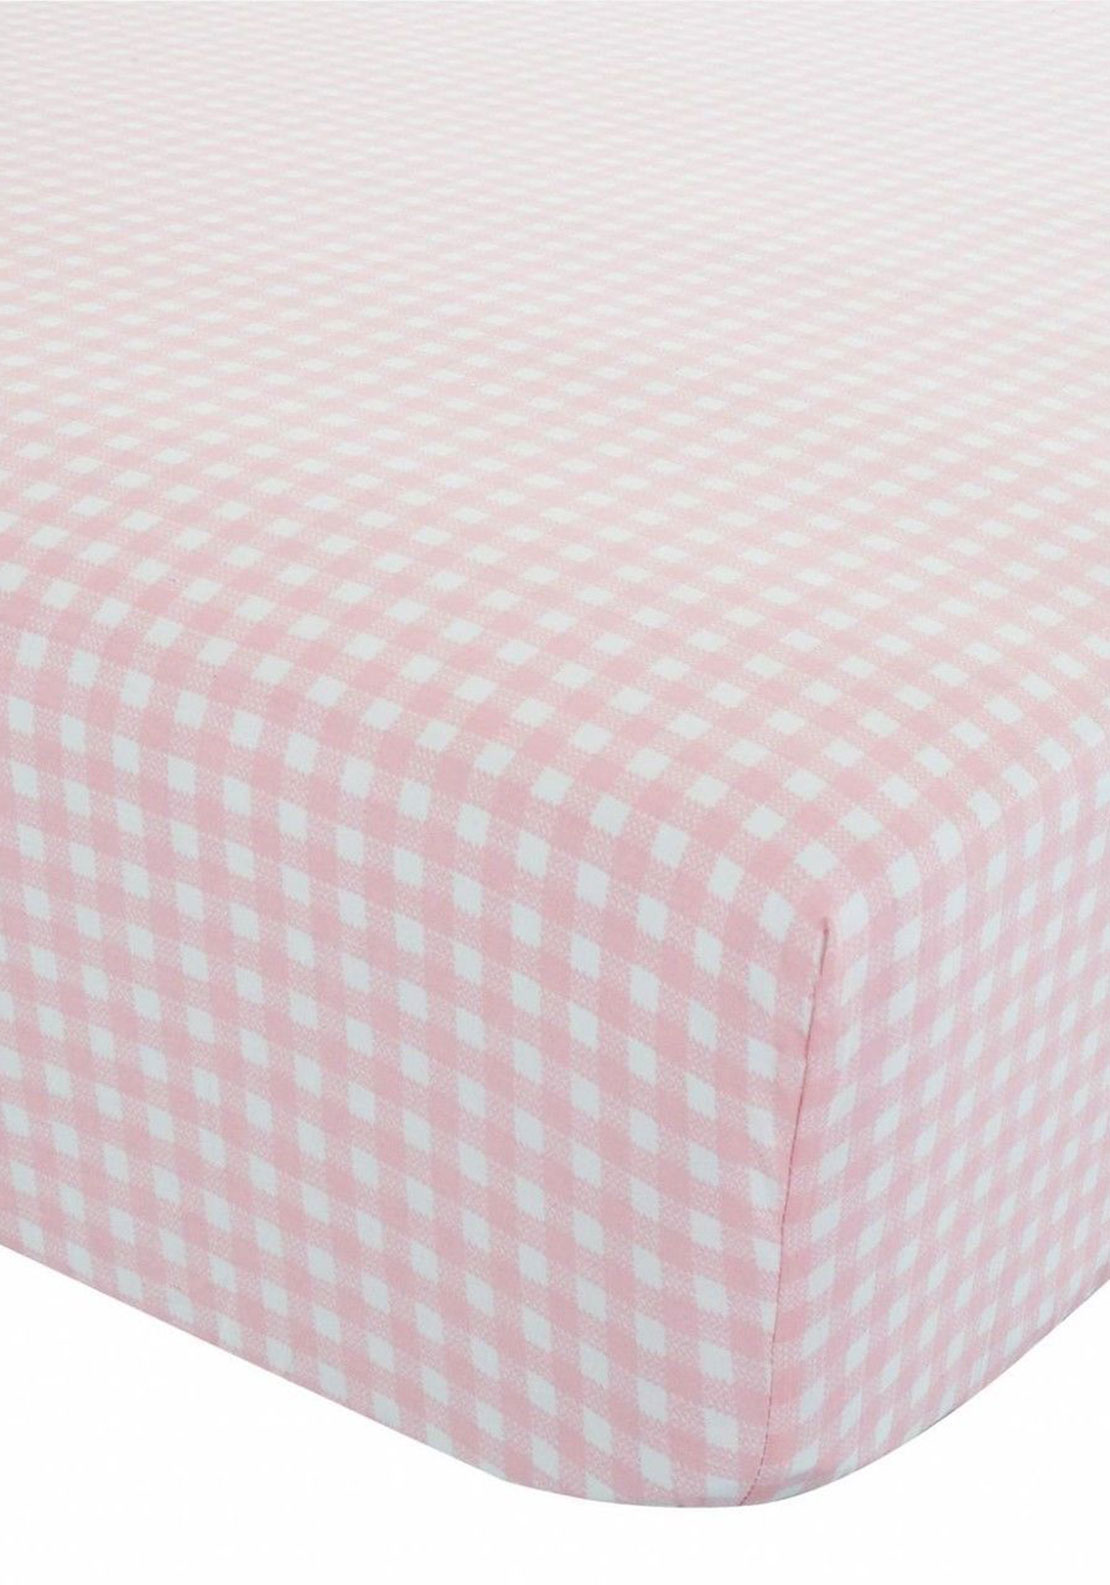 Catherine Lansfield Kids Gingham Fitted Sheet, Pink